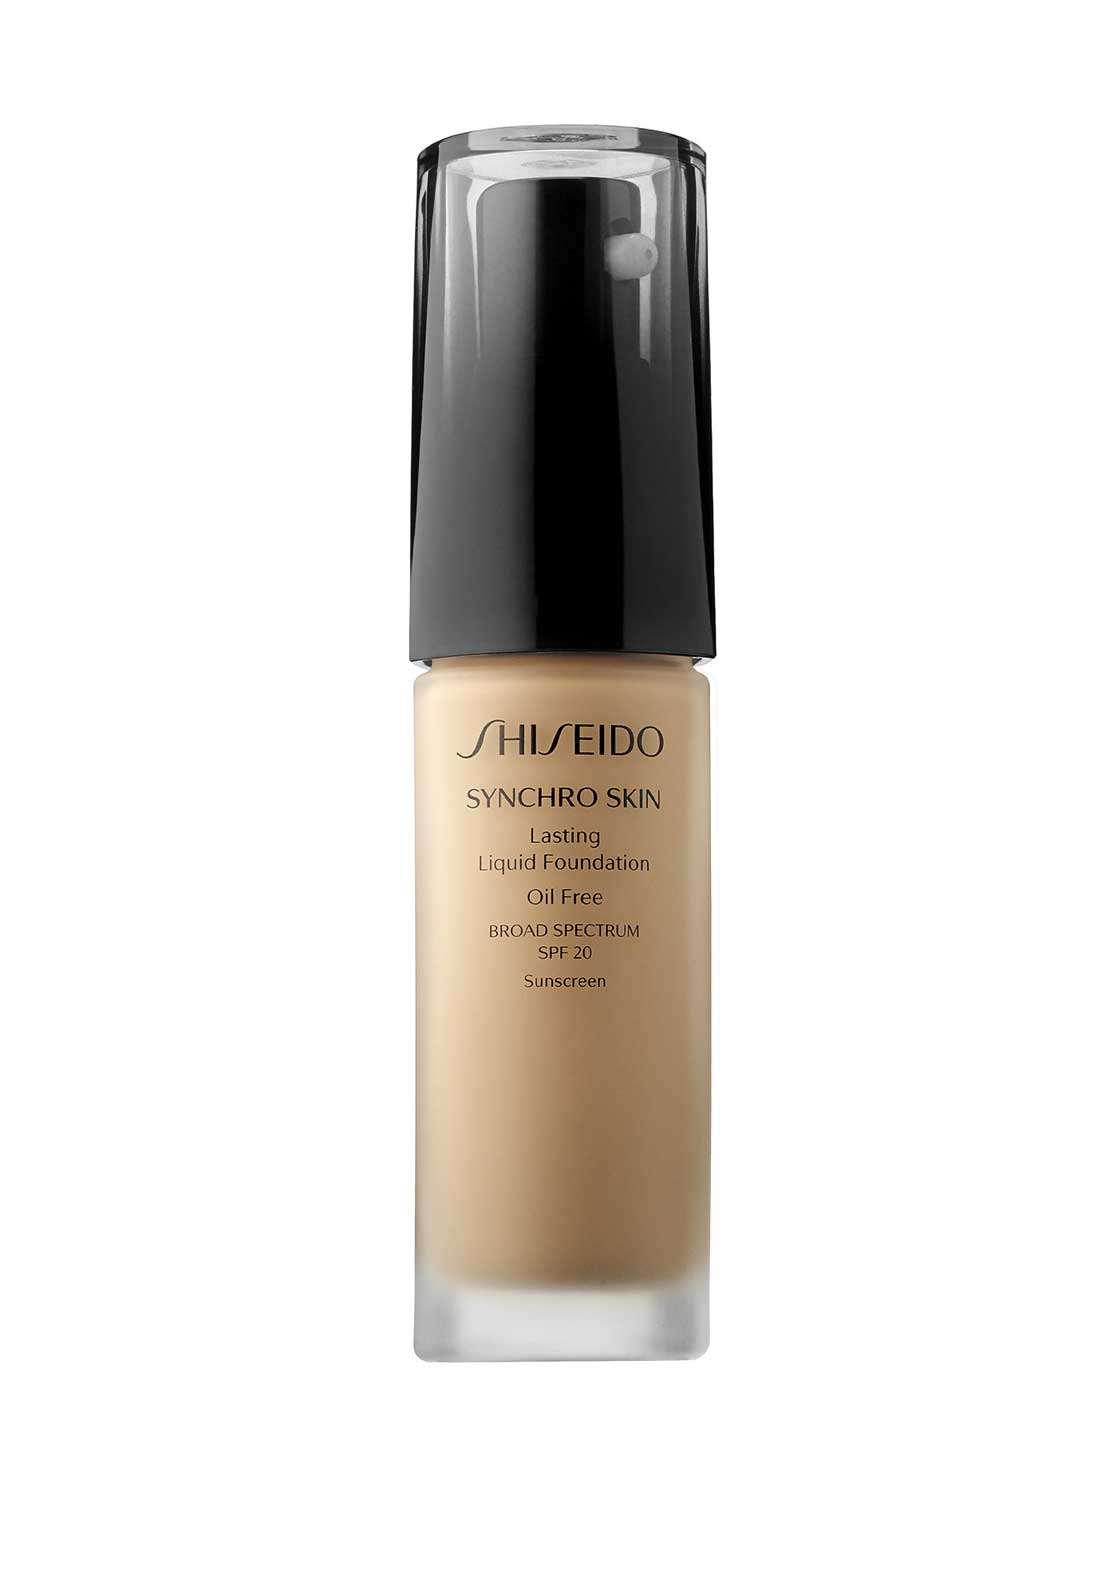 Shiseido Synchro Skin Lasting Liquid Foundation, Broad Spectrum SPF 20, Golden 3